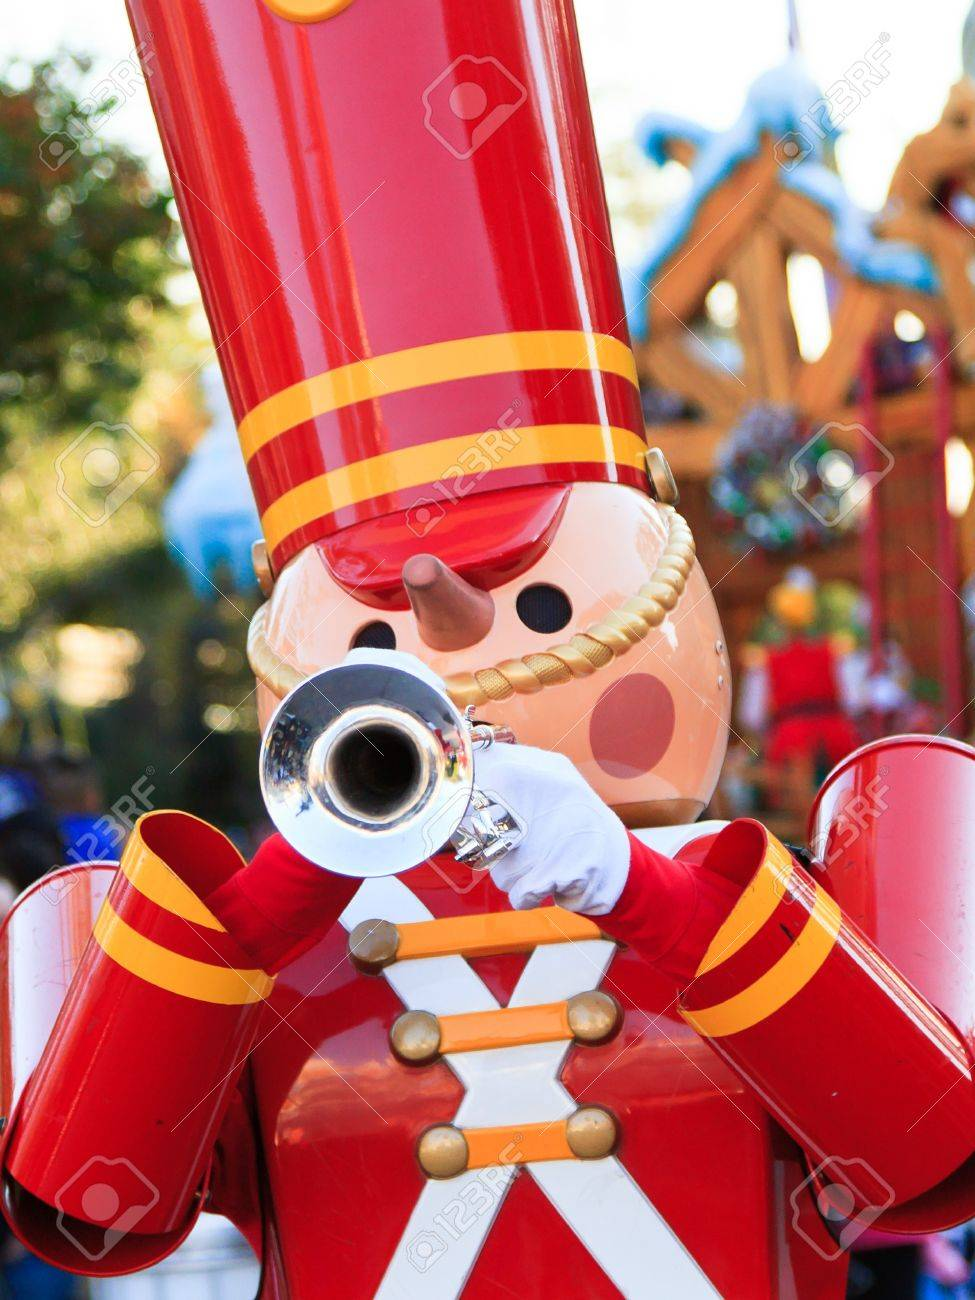 A toy soldier playing the trumpet in celebration of the year end holidays Stock Photo - 11840906